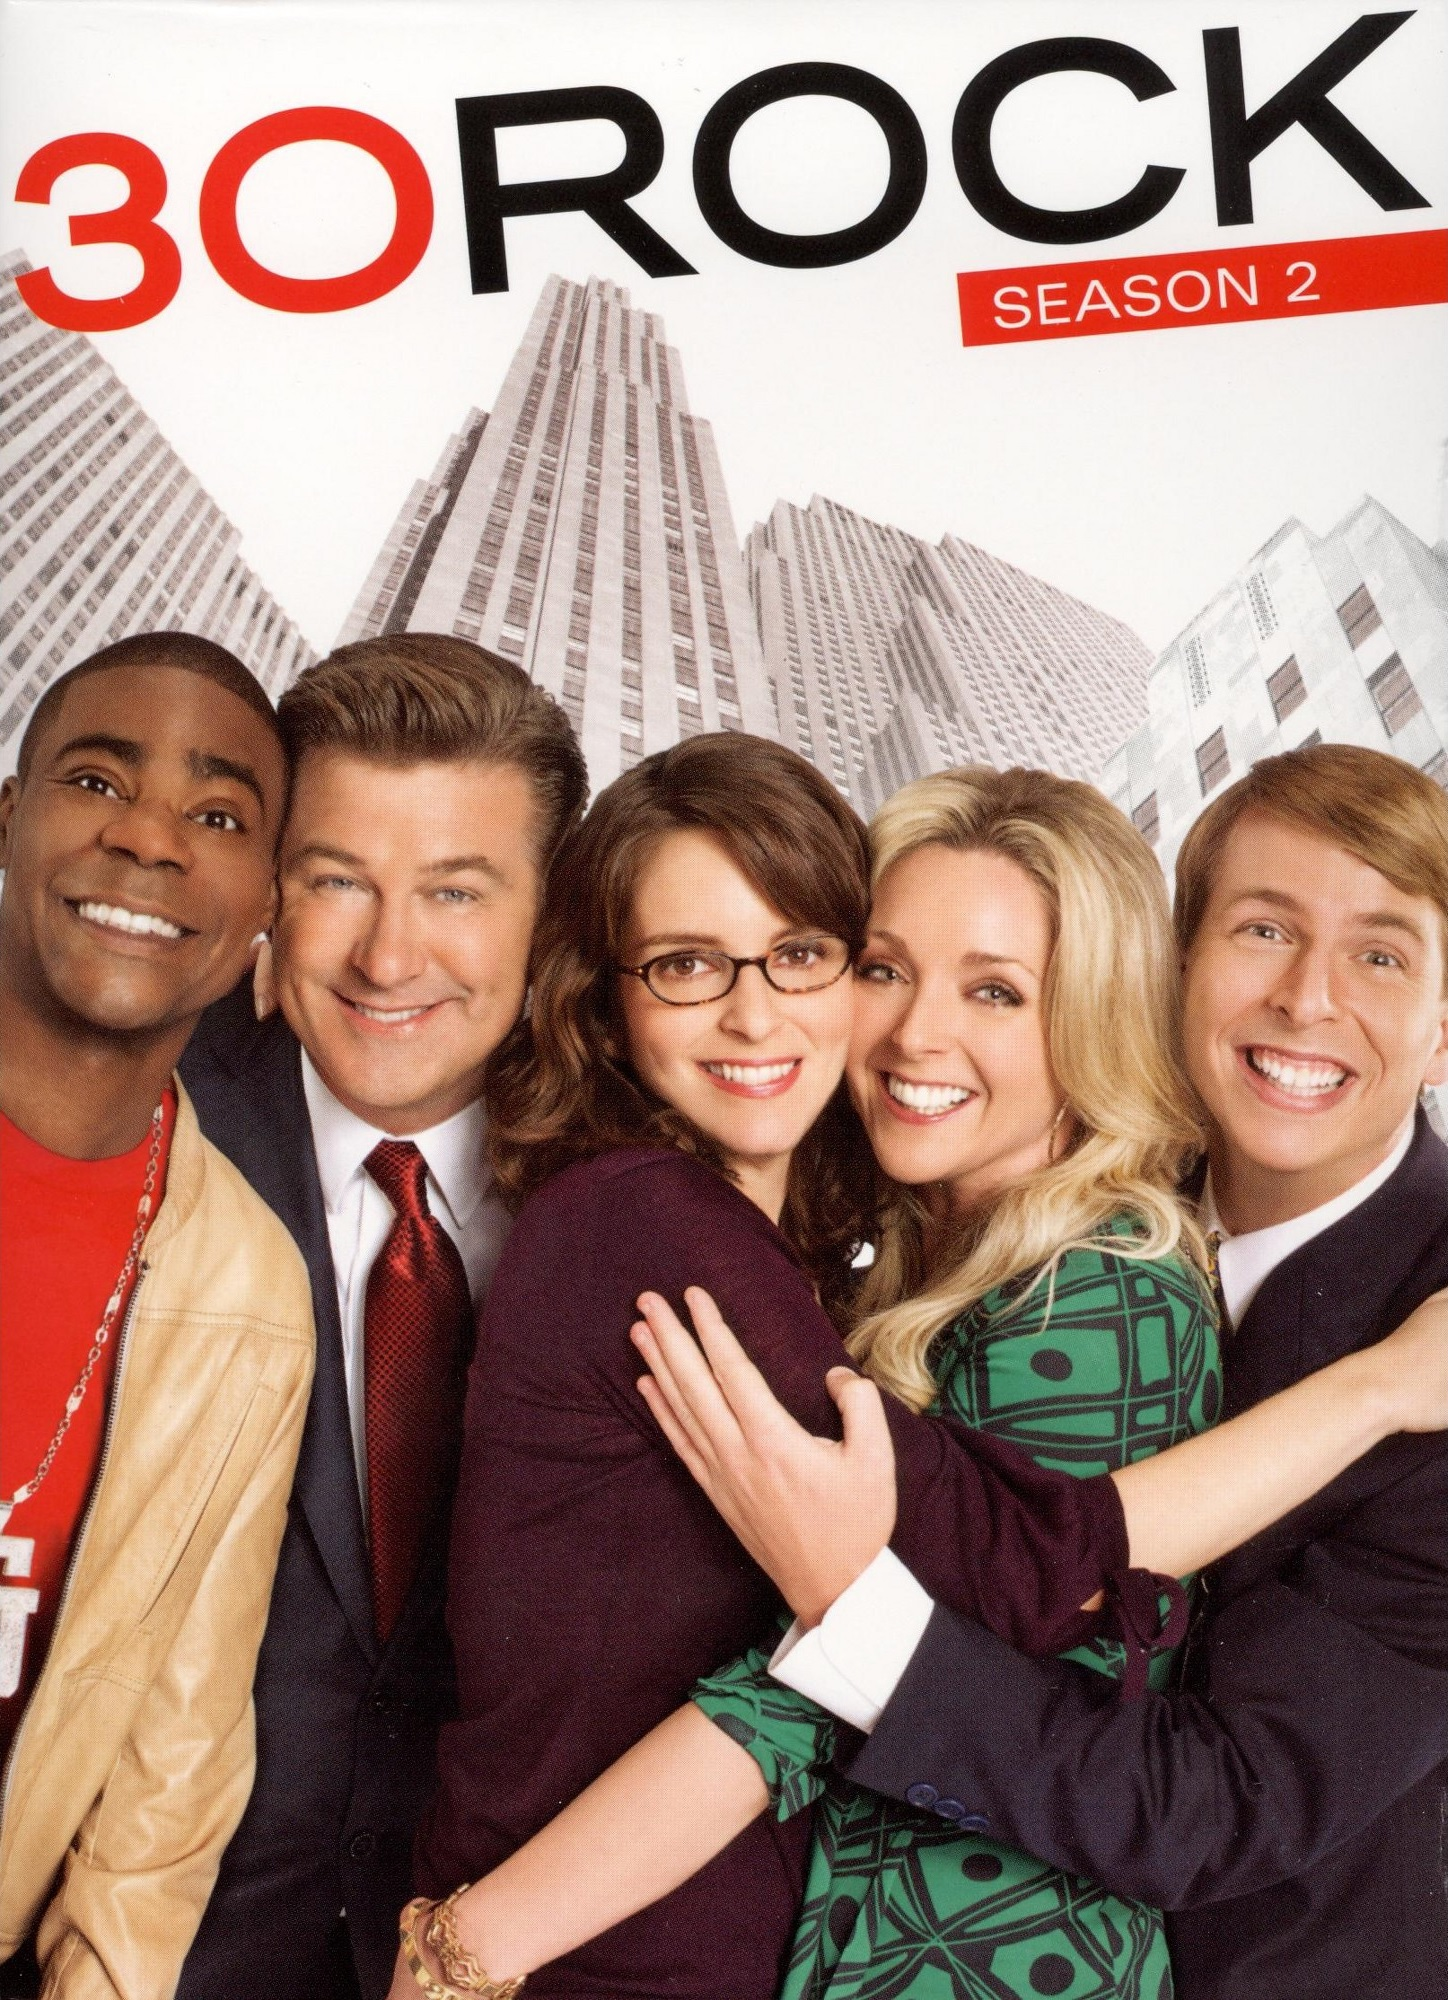 30 Rock Season Two DVD Cover